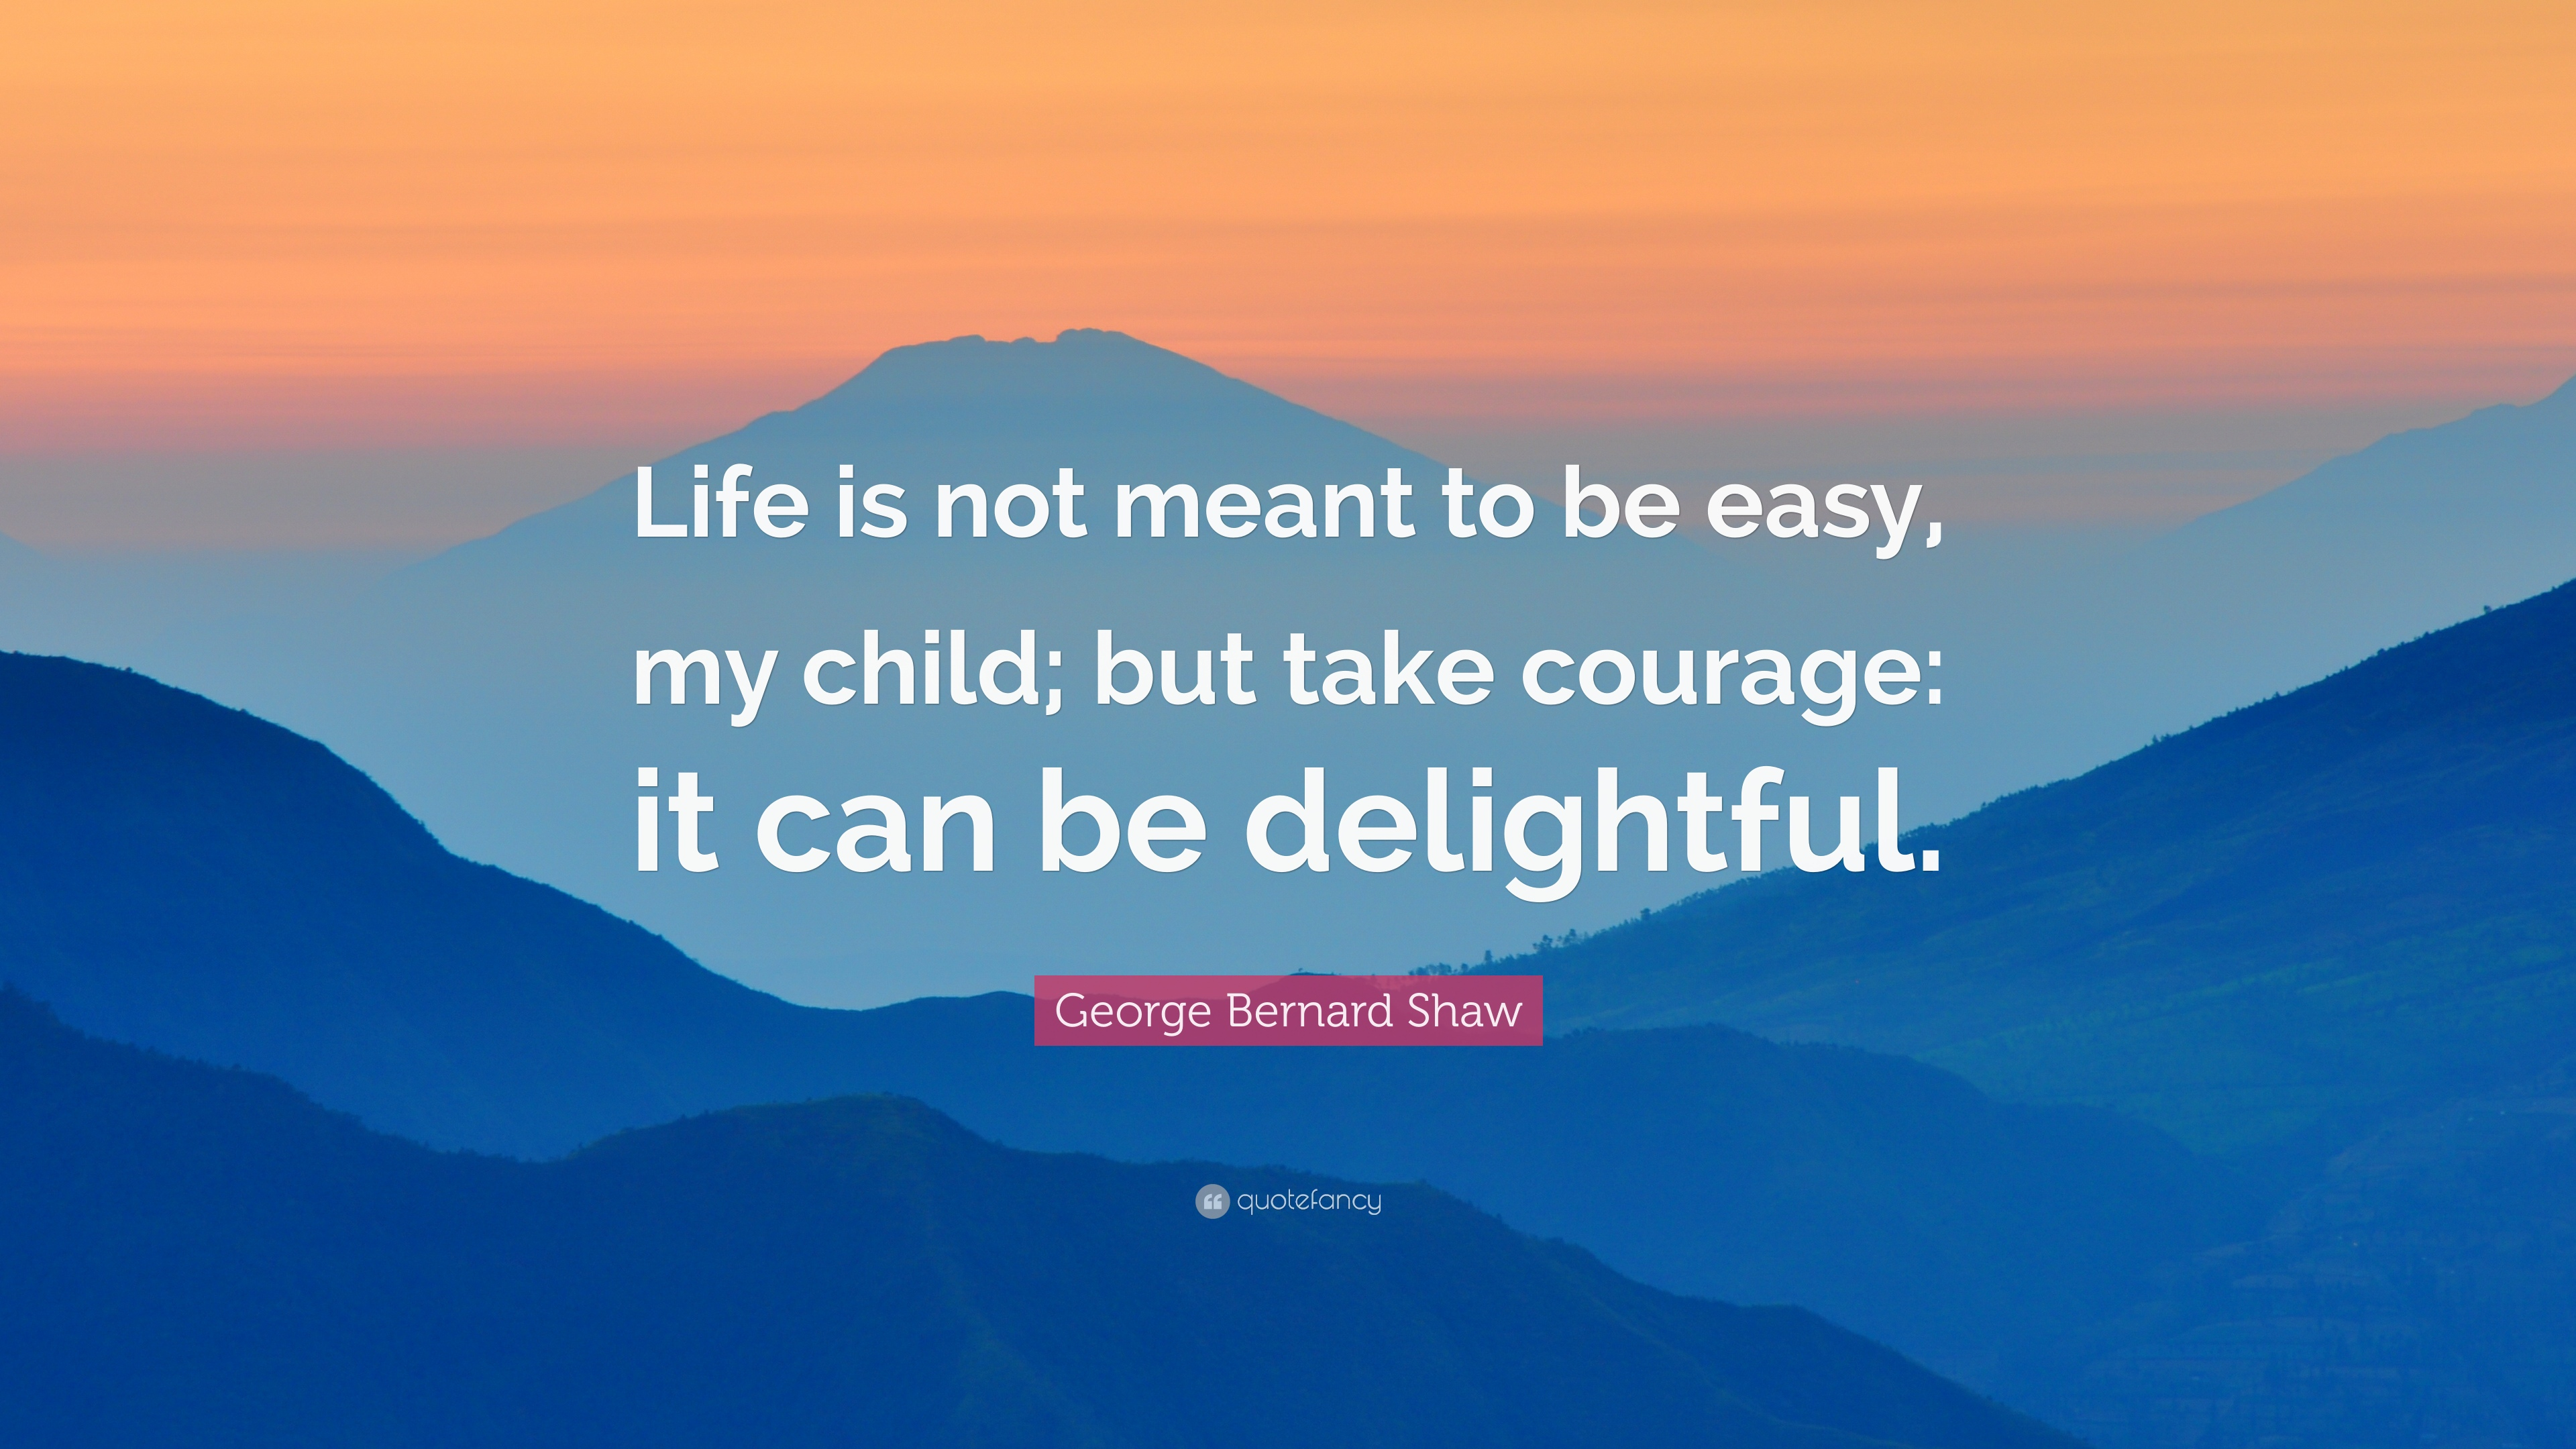 George Bernard Shaw Quote Life Is Not Meant To Be Easy My Child